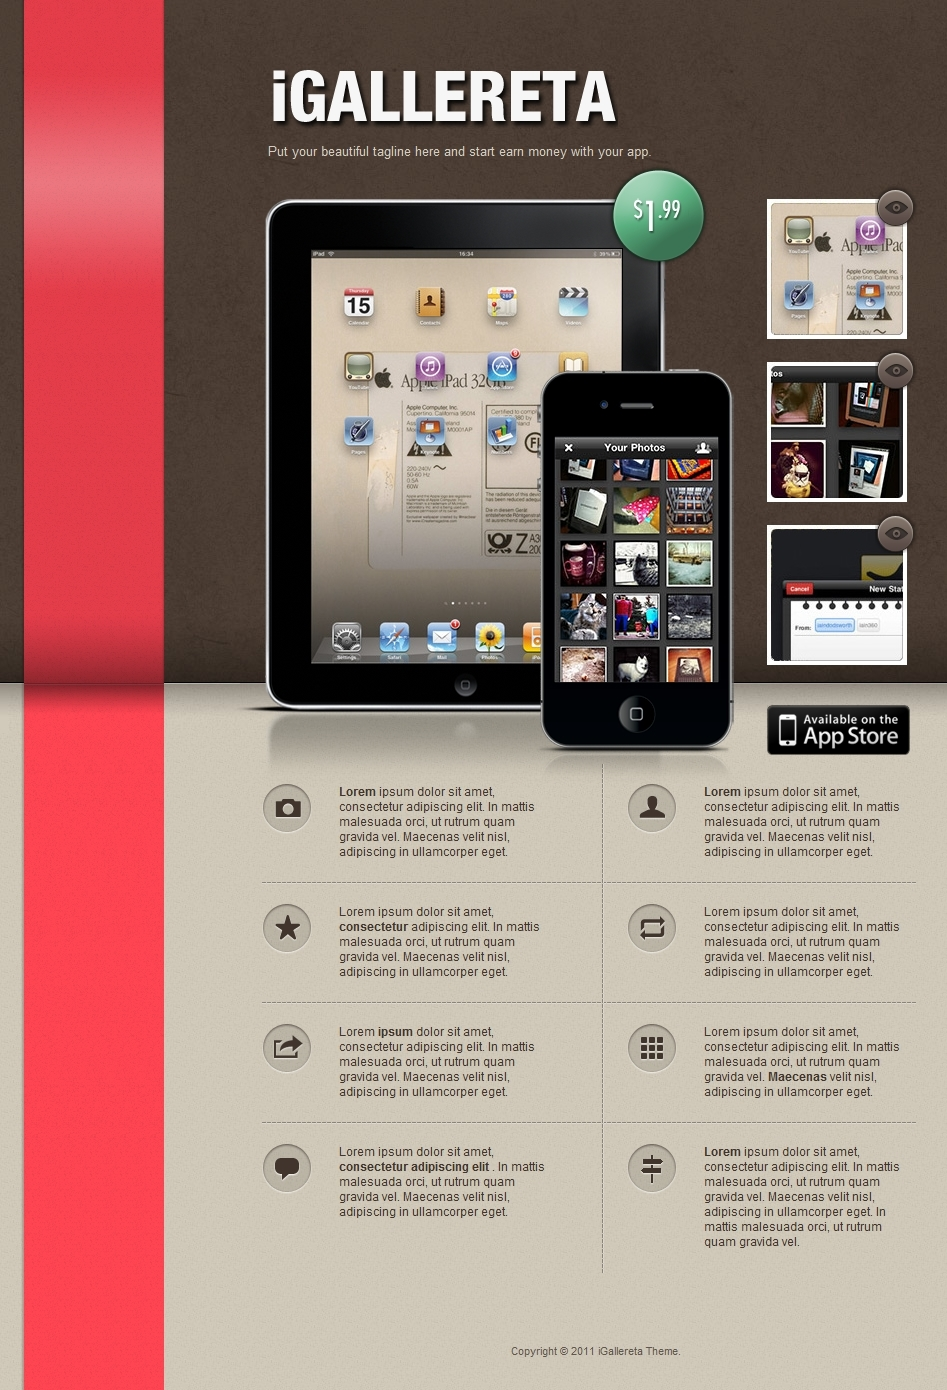 IGallereta - Mobile App Sales Page - an iGallereta template preview using the brown header background and a red ribbon.